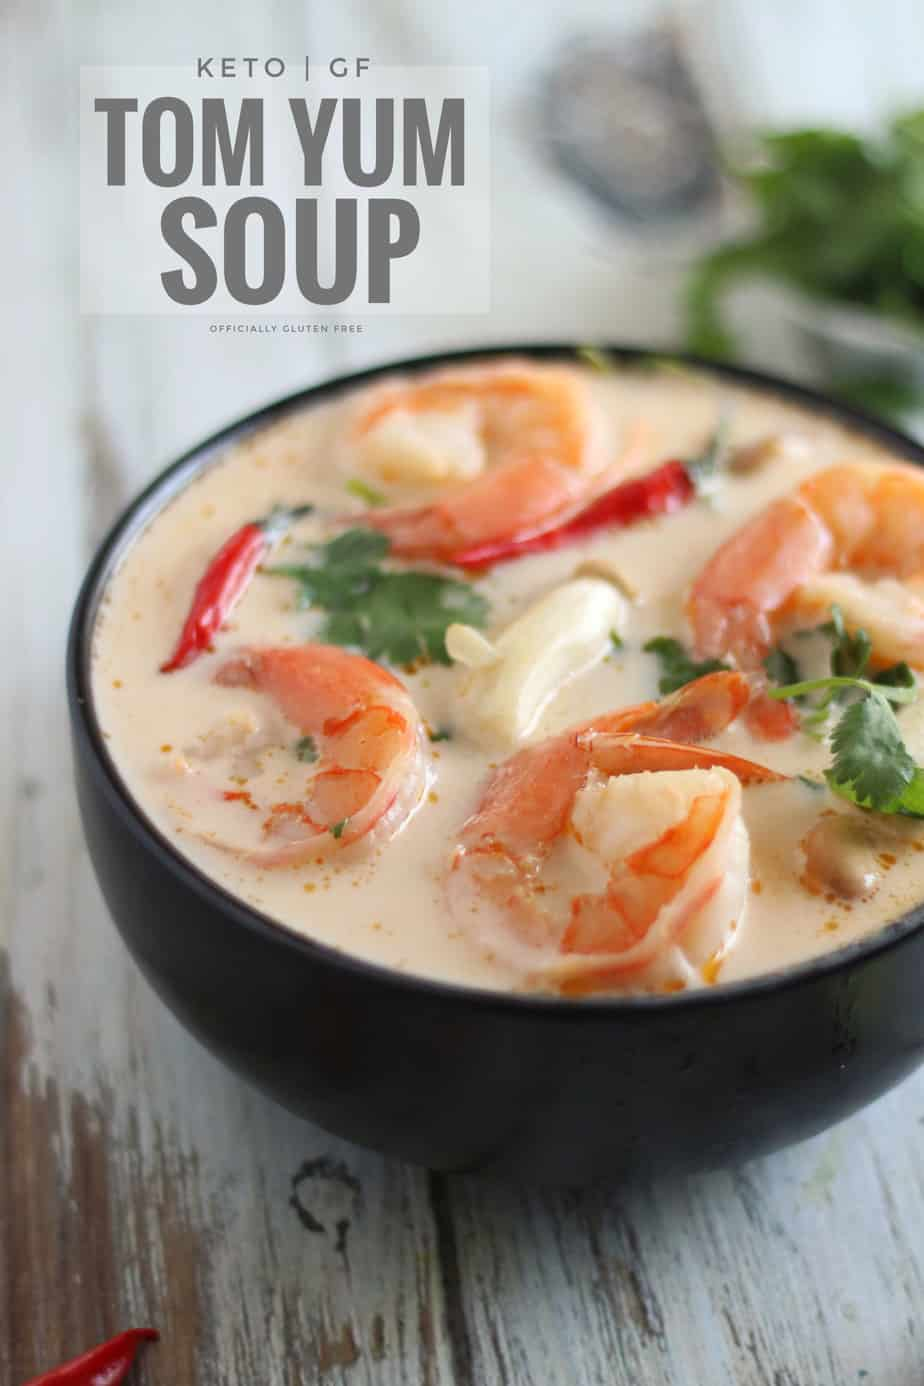 Keto Tom Yum Soup